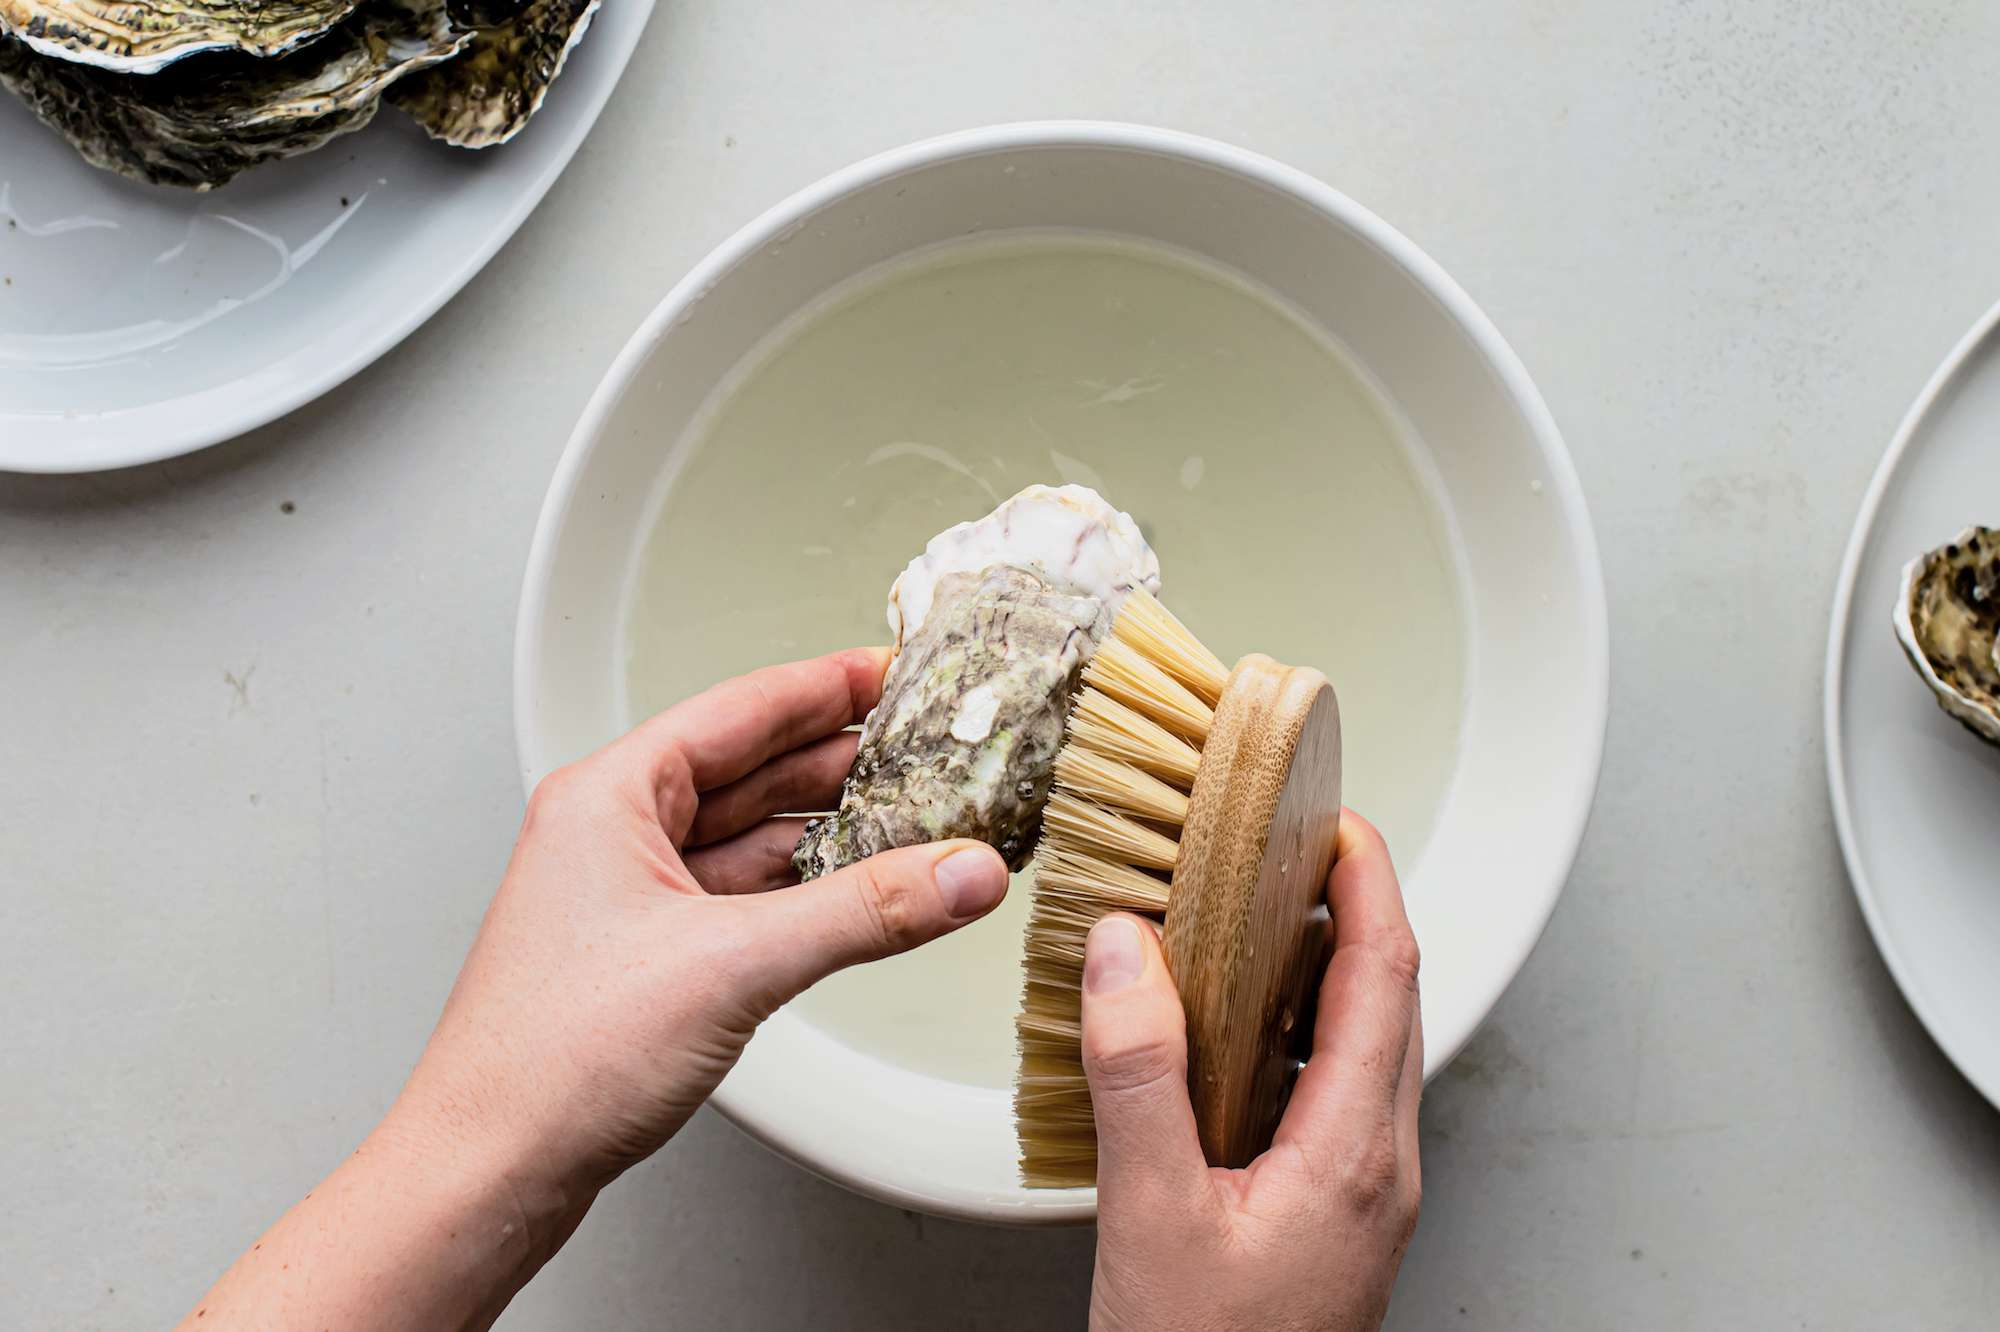 Scrubbing an oyster shell with a brush